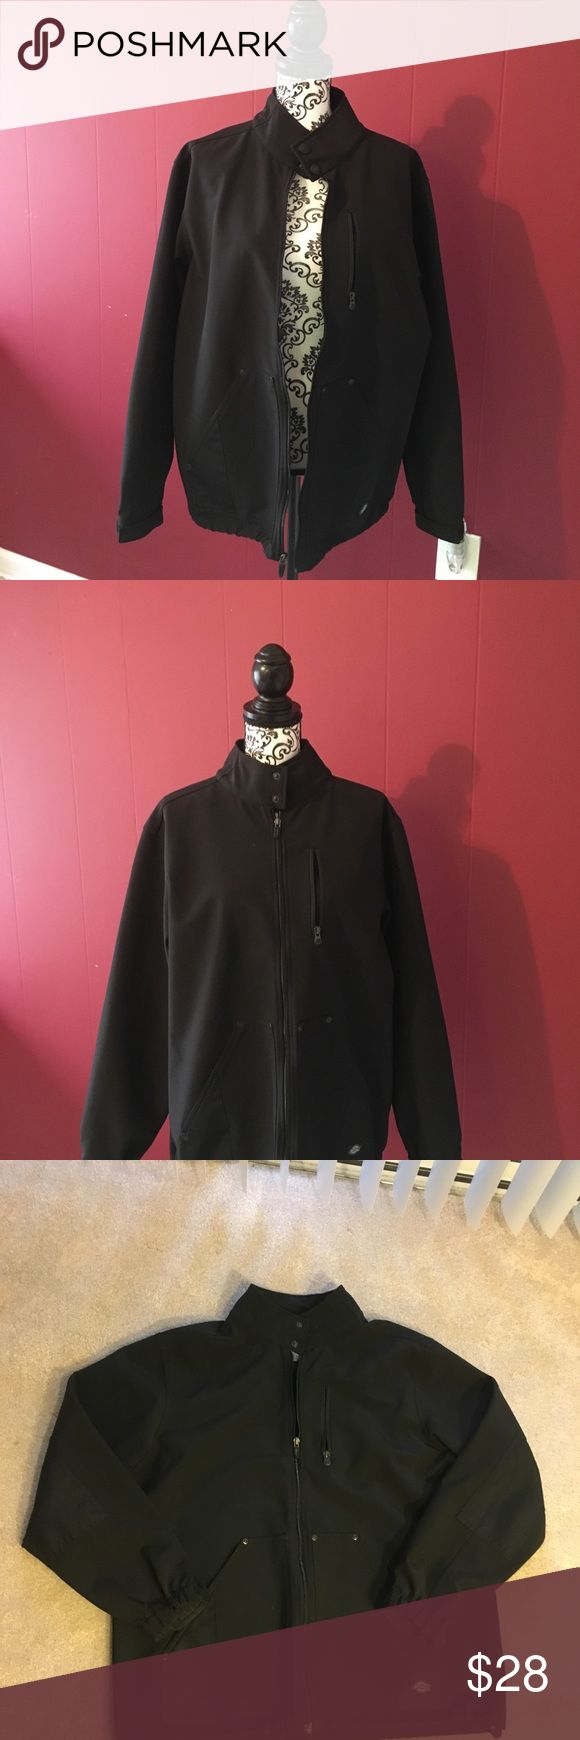 Men's Storm by Dickies Jacket Weather, water resistant, lightweight jacket in like new condition. Dickies Jackets & Coats